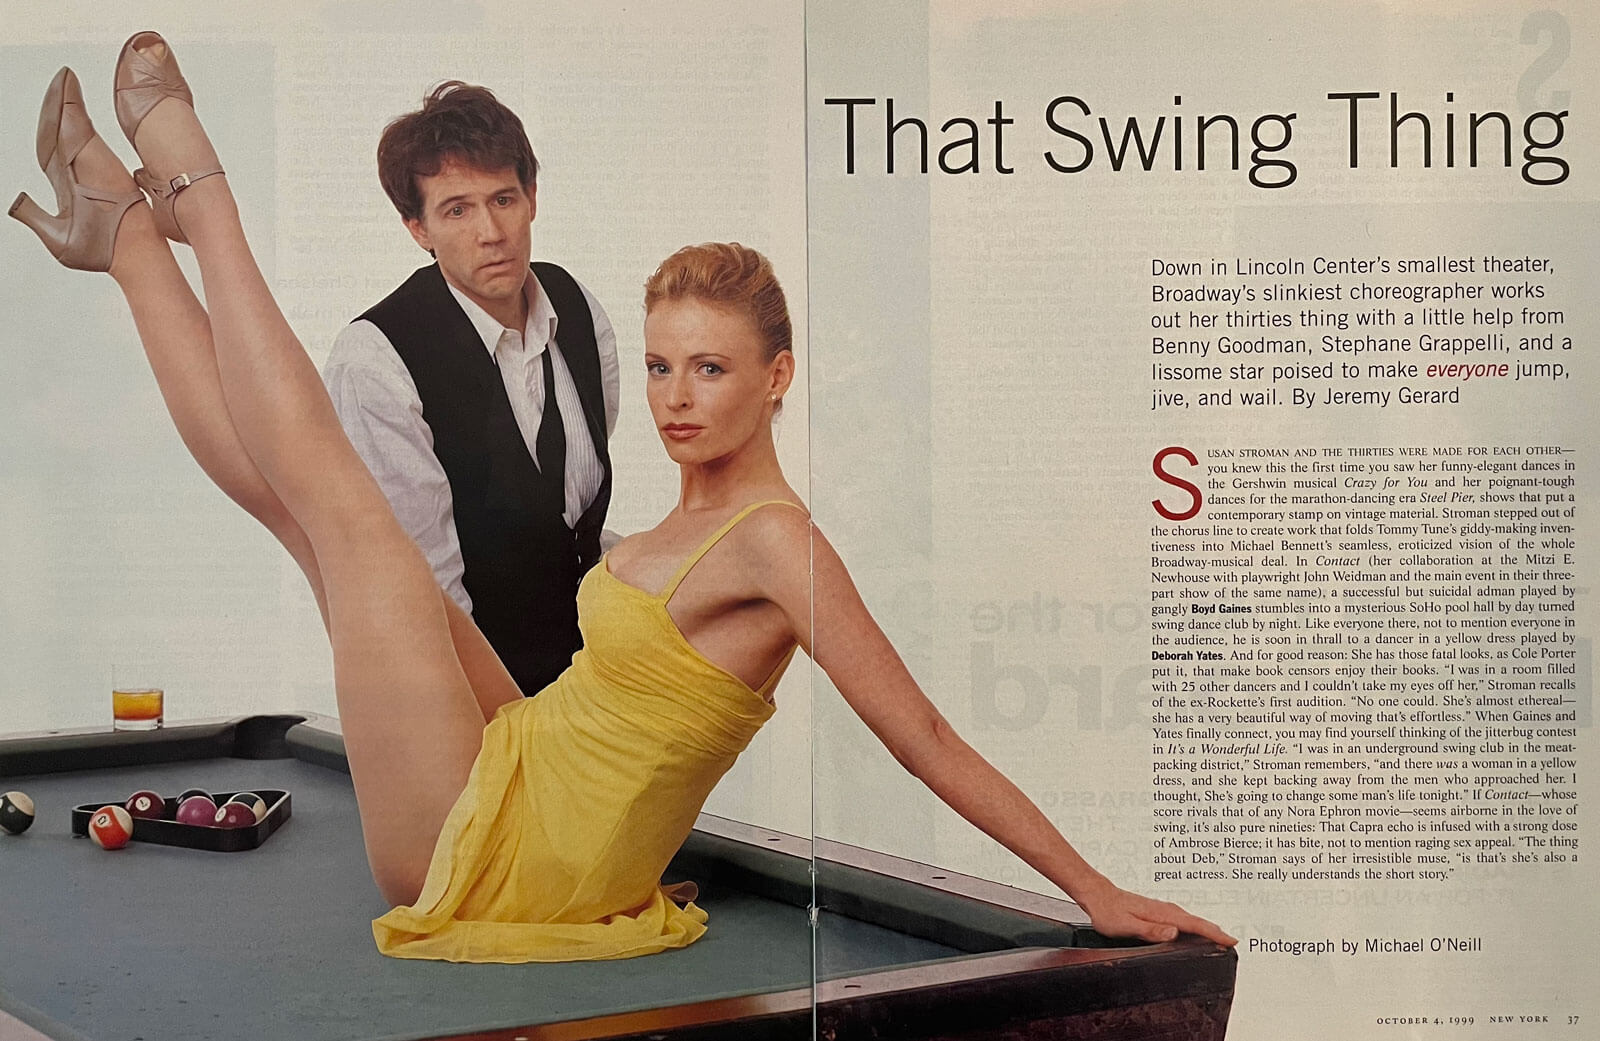 Boyd Gaines as Michael Wiley and Deborah Yates as Girl in the Yellow Dress pose on a pool table for a New York Magazine article entitled That Swing Thing.